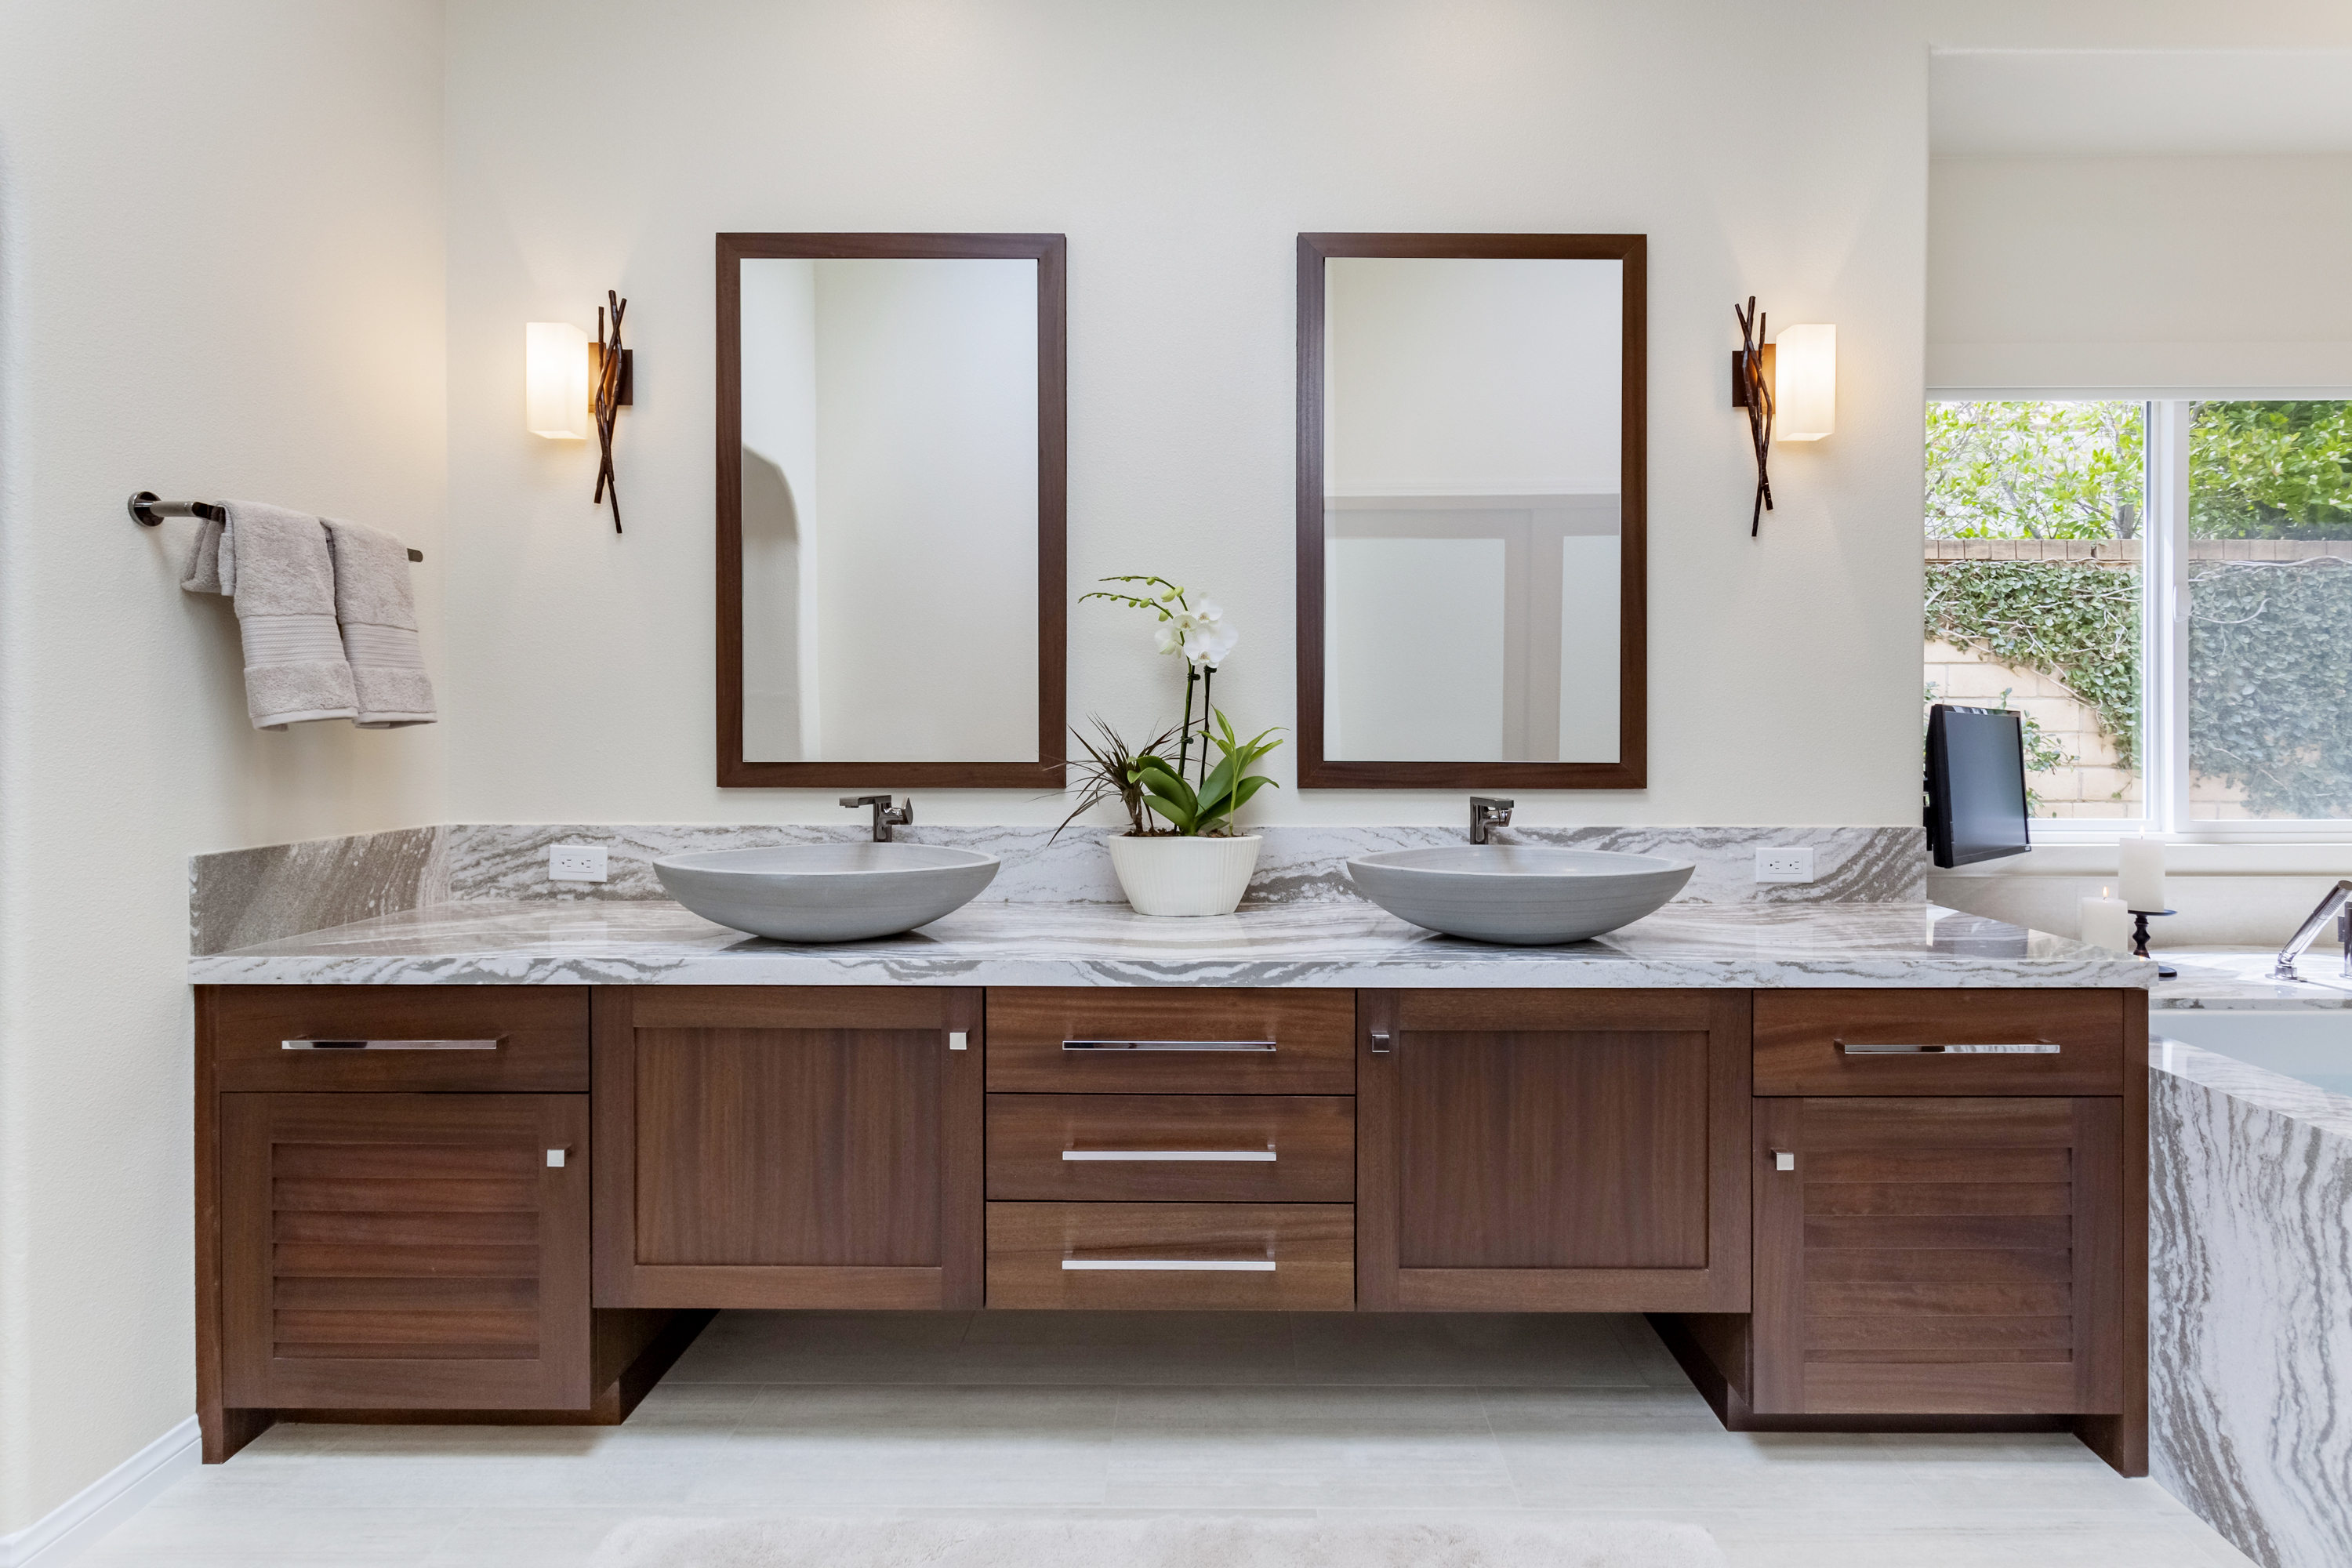 Calypso Bathroom Cabinets in Mahogany